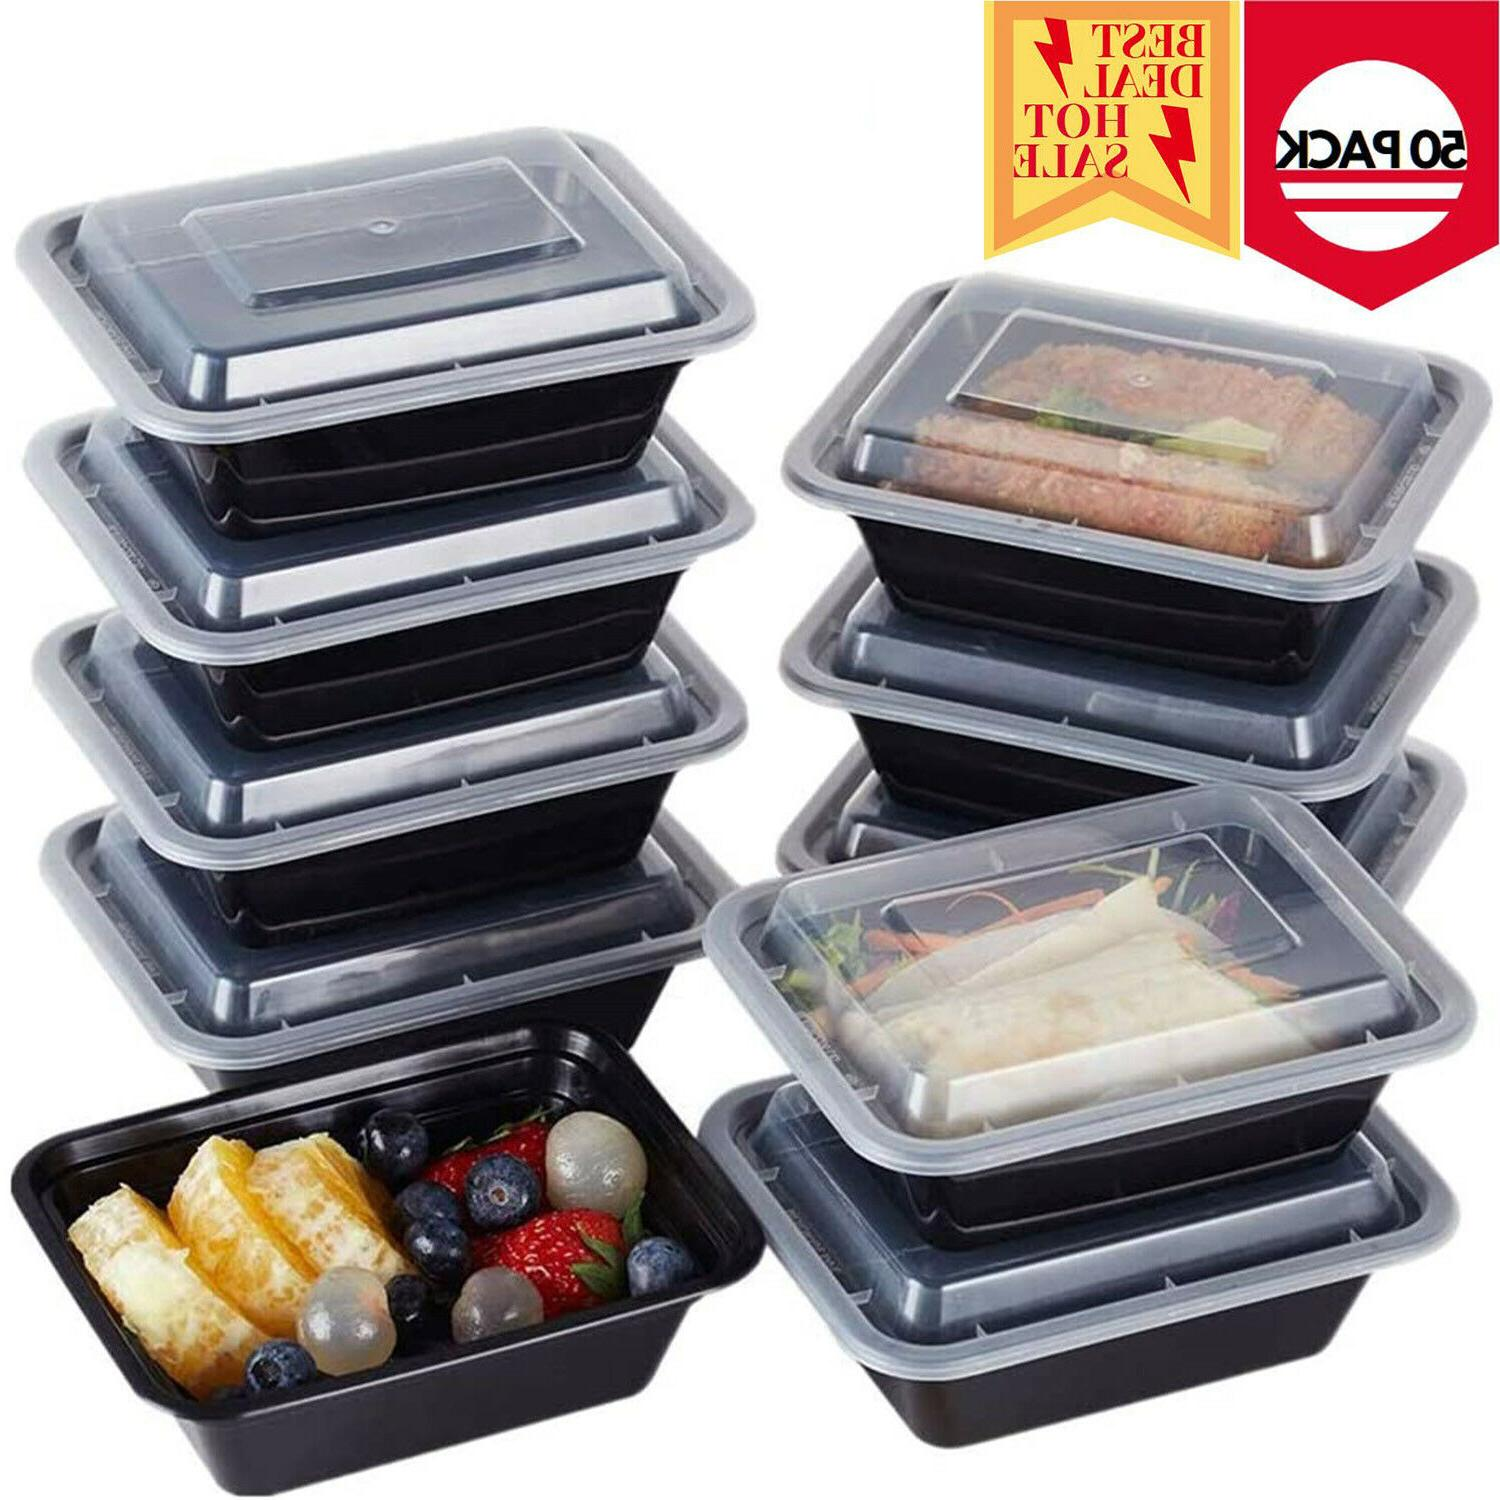 50 Meal 1 Compartment Boxes Microwave Safe